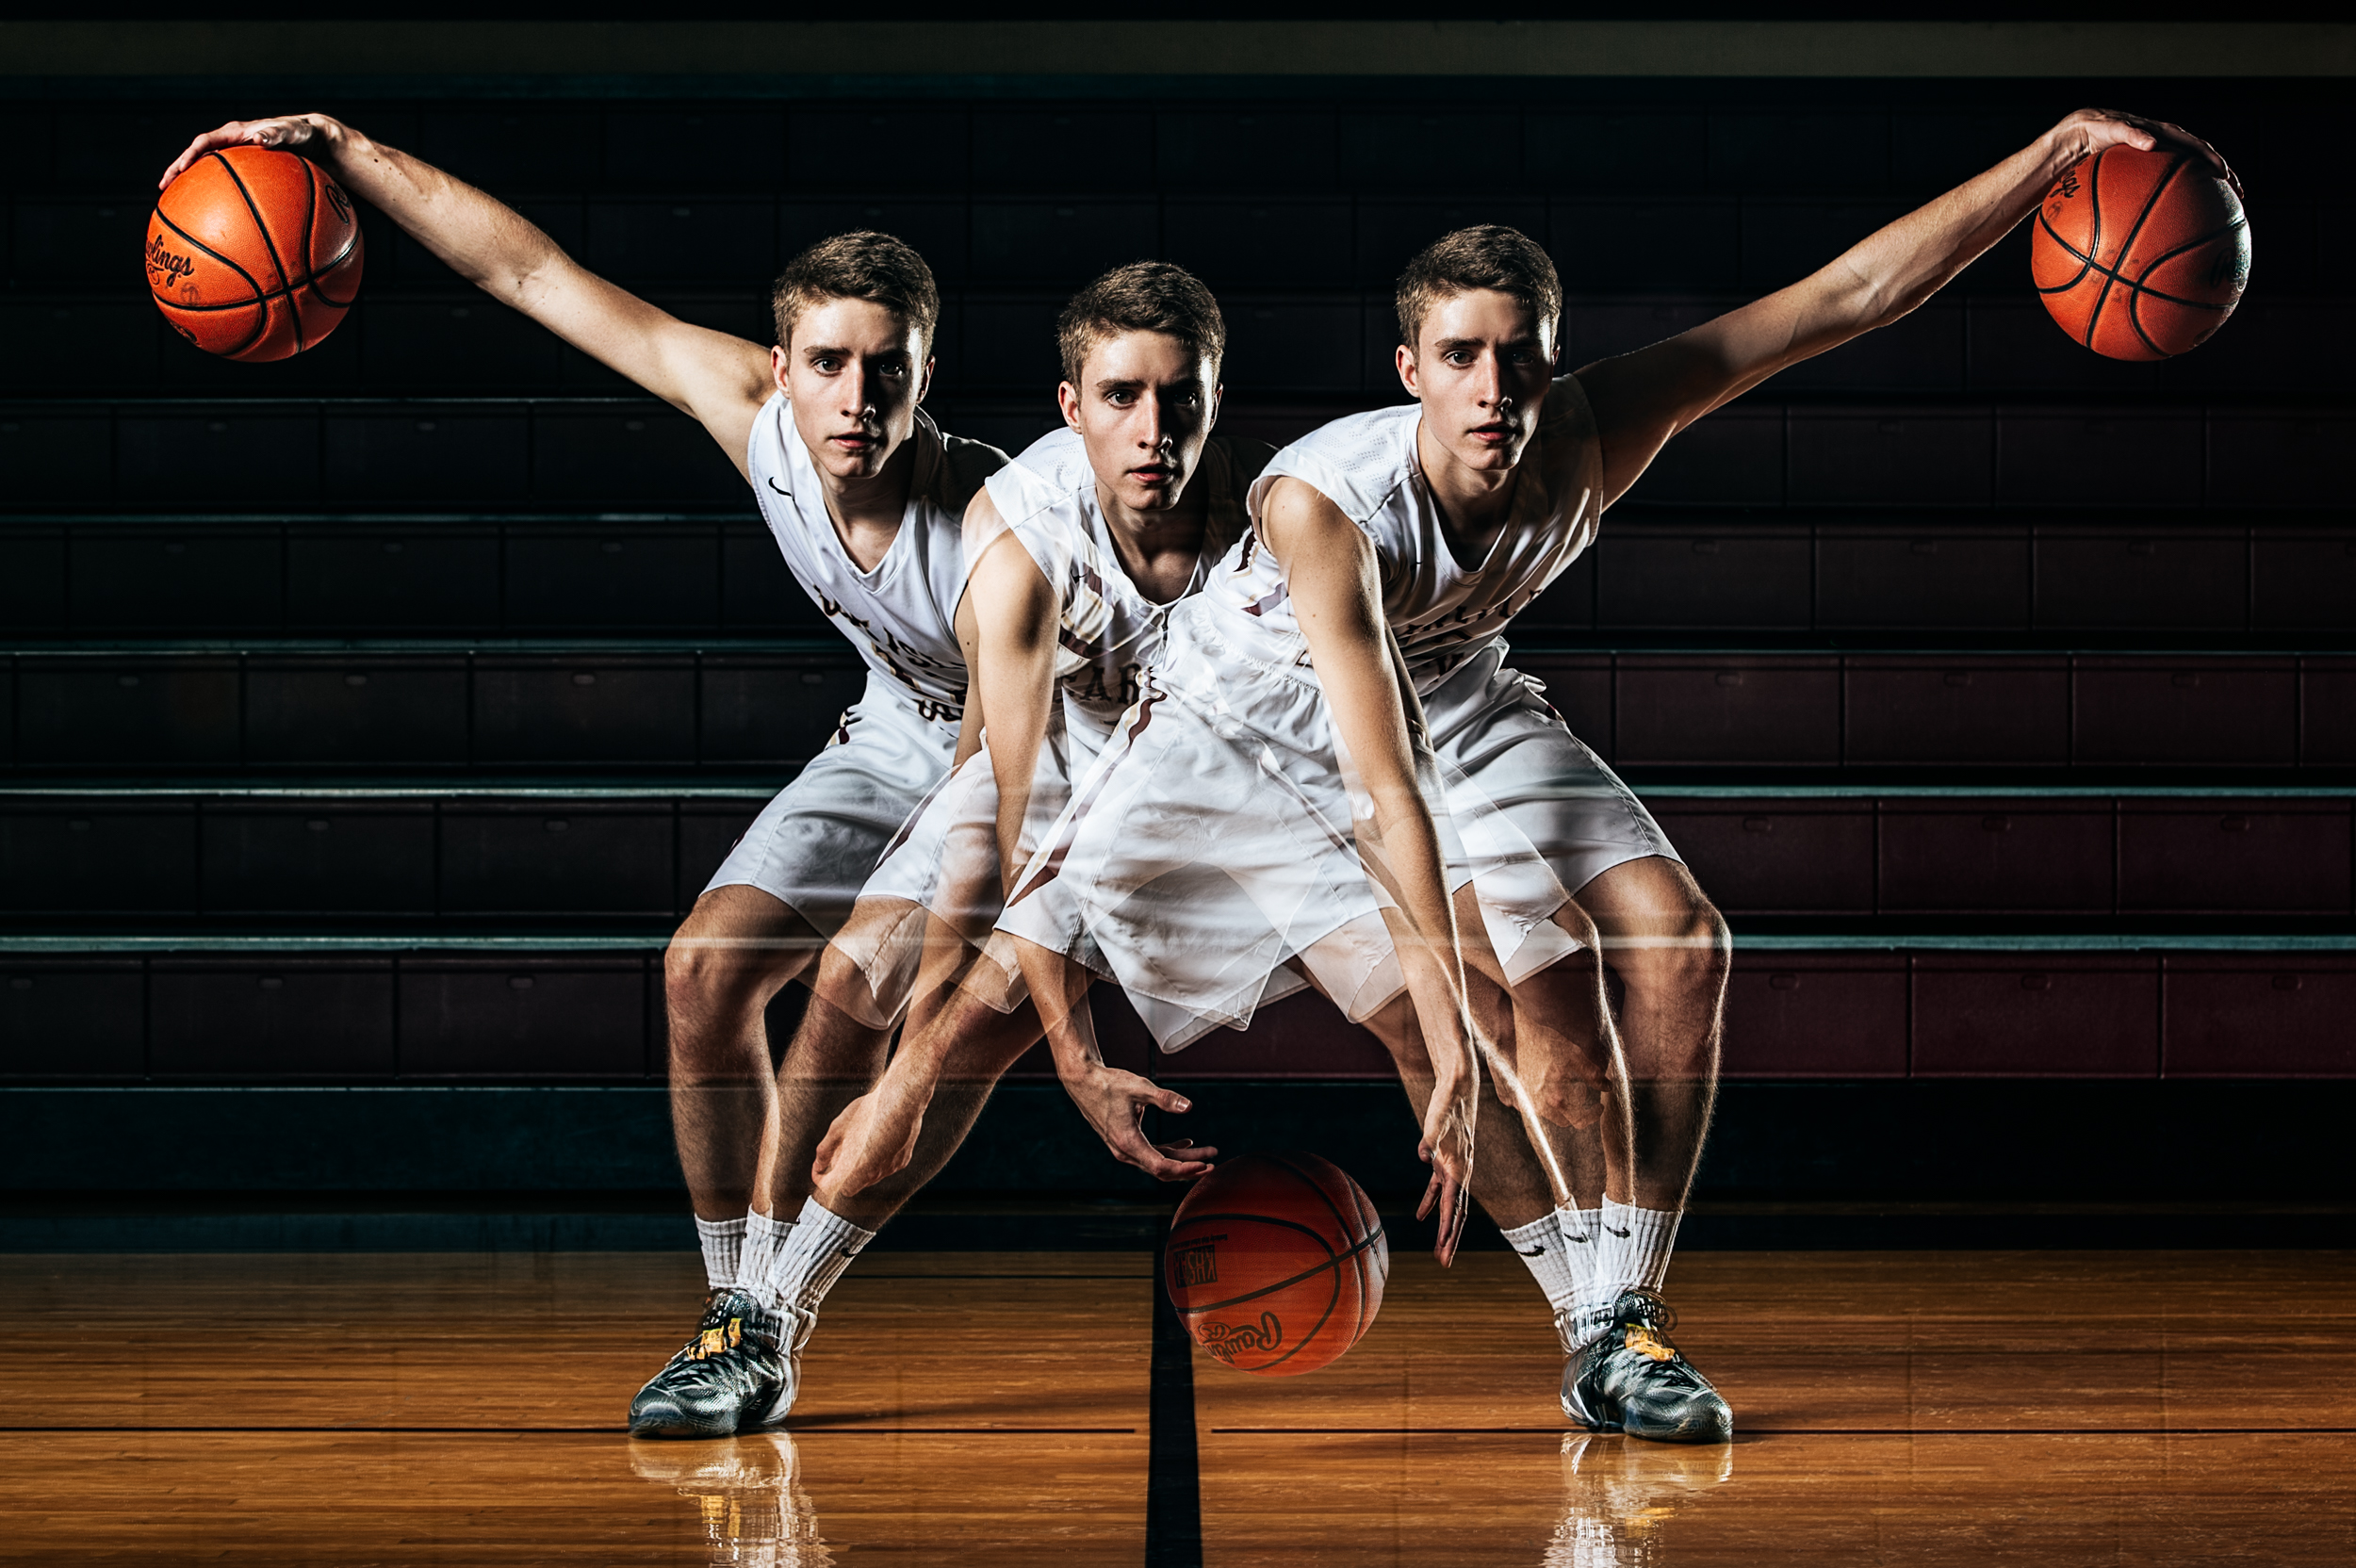 Noah Norsworthy, Jordan Kellett, & Paxton Crider Basketball Senior Pictures in Carlisle Co.